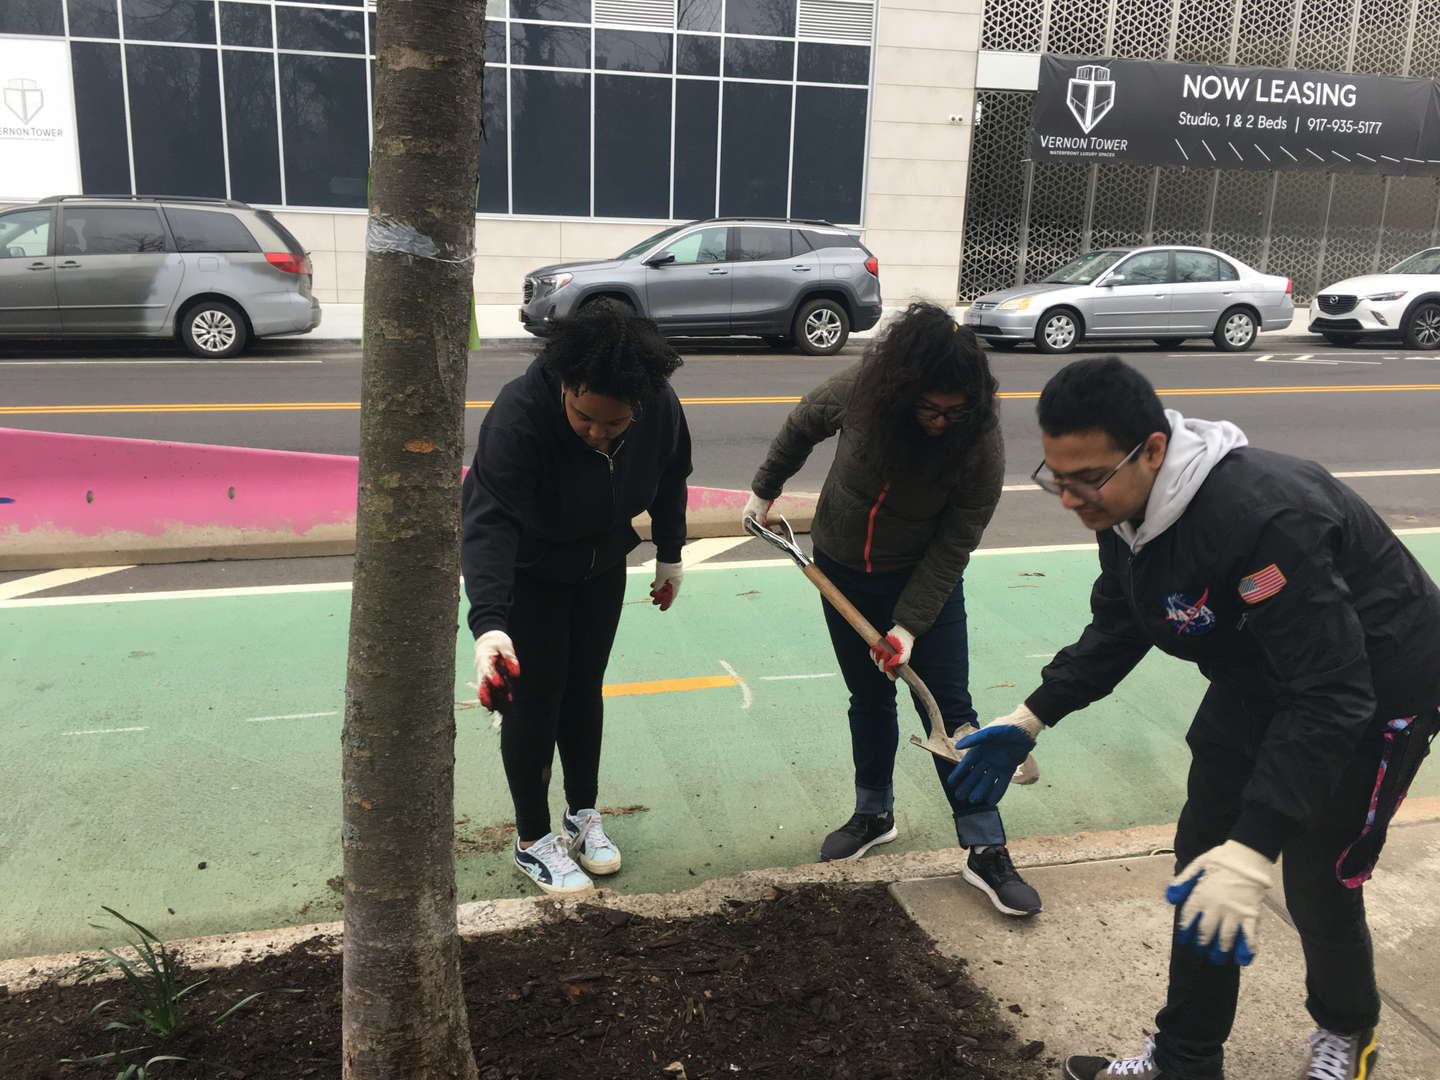 Student shovels dirt while two other students wearing gloves work beside them